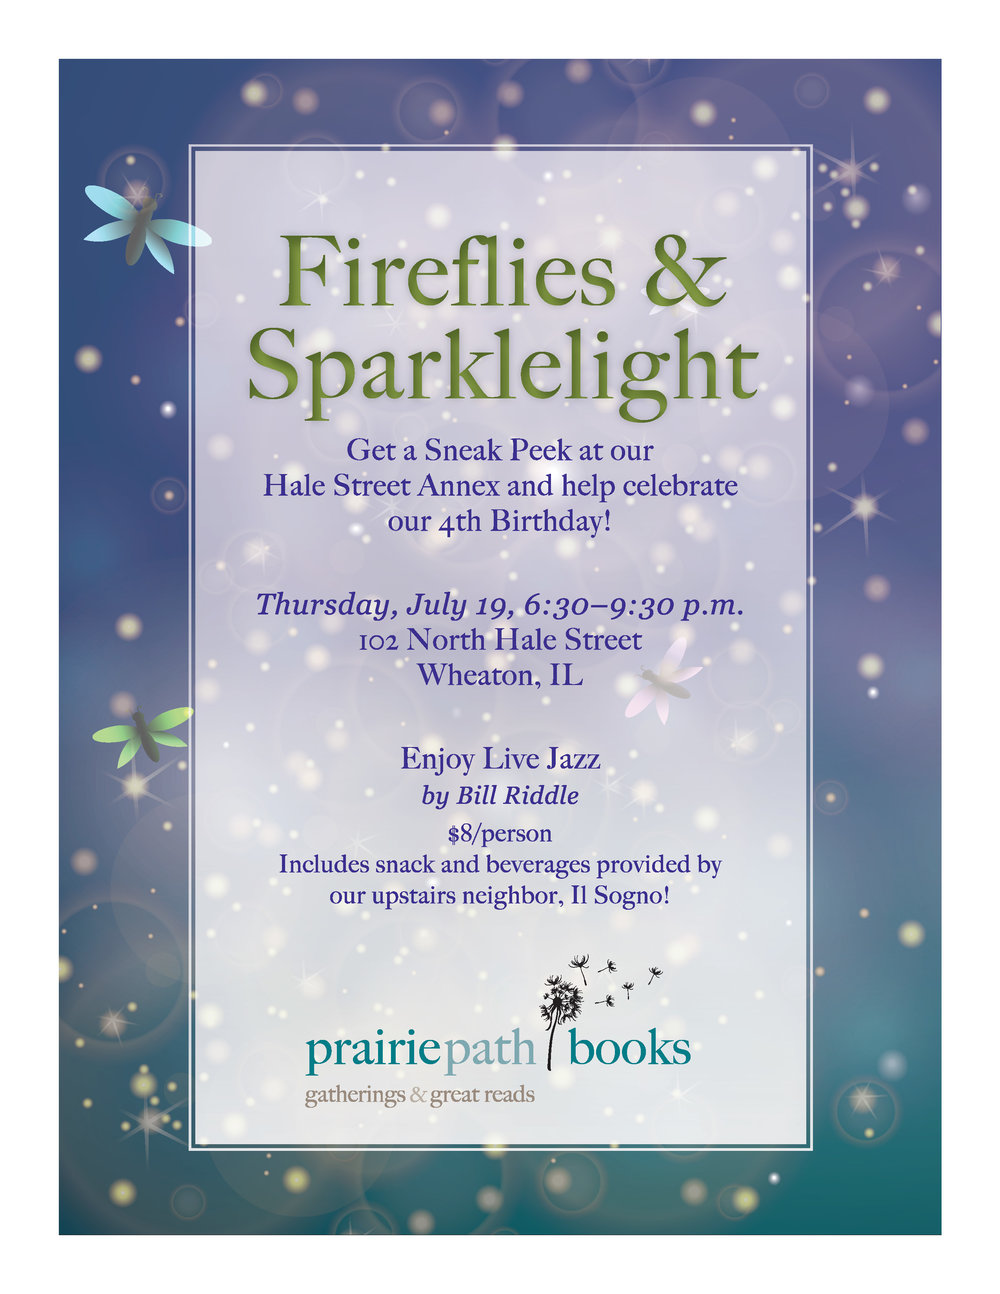 FirefliesSparklelight_July19.jpg